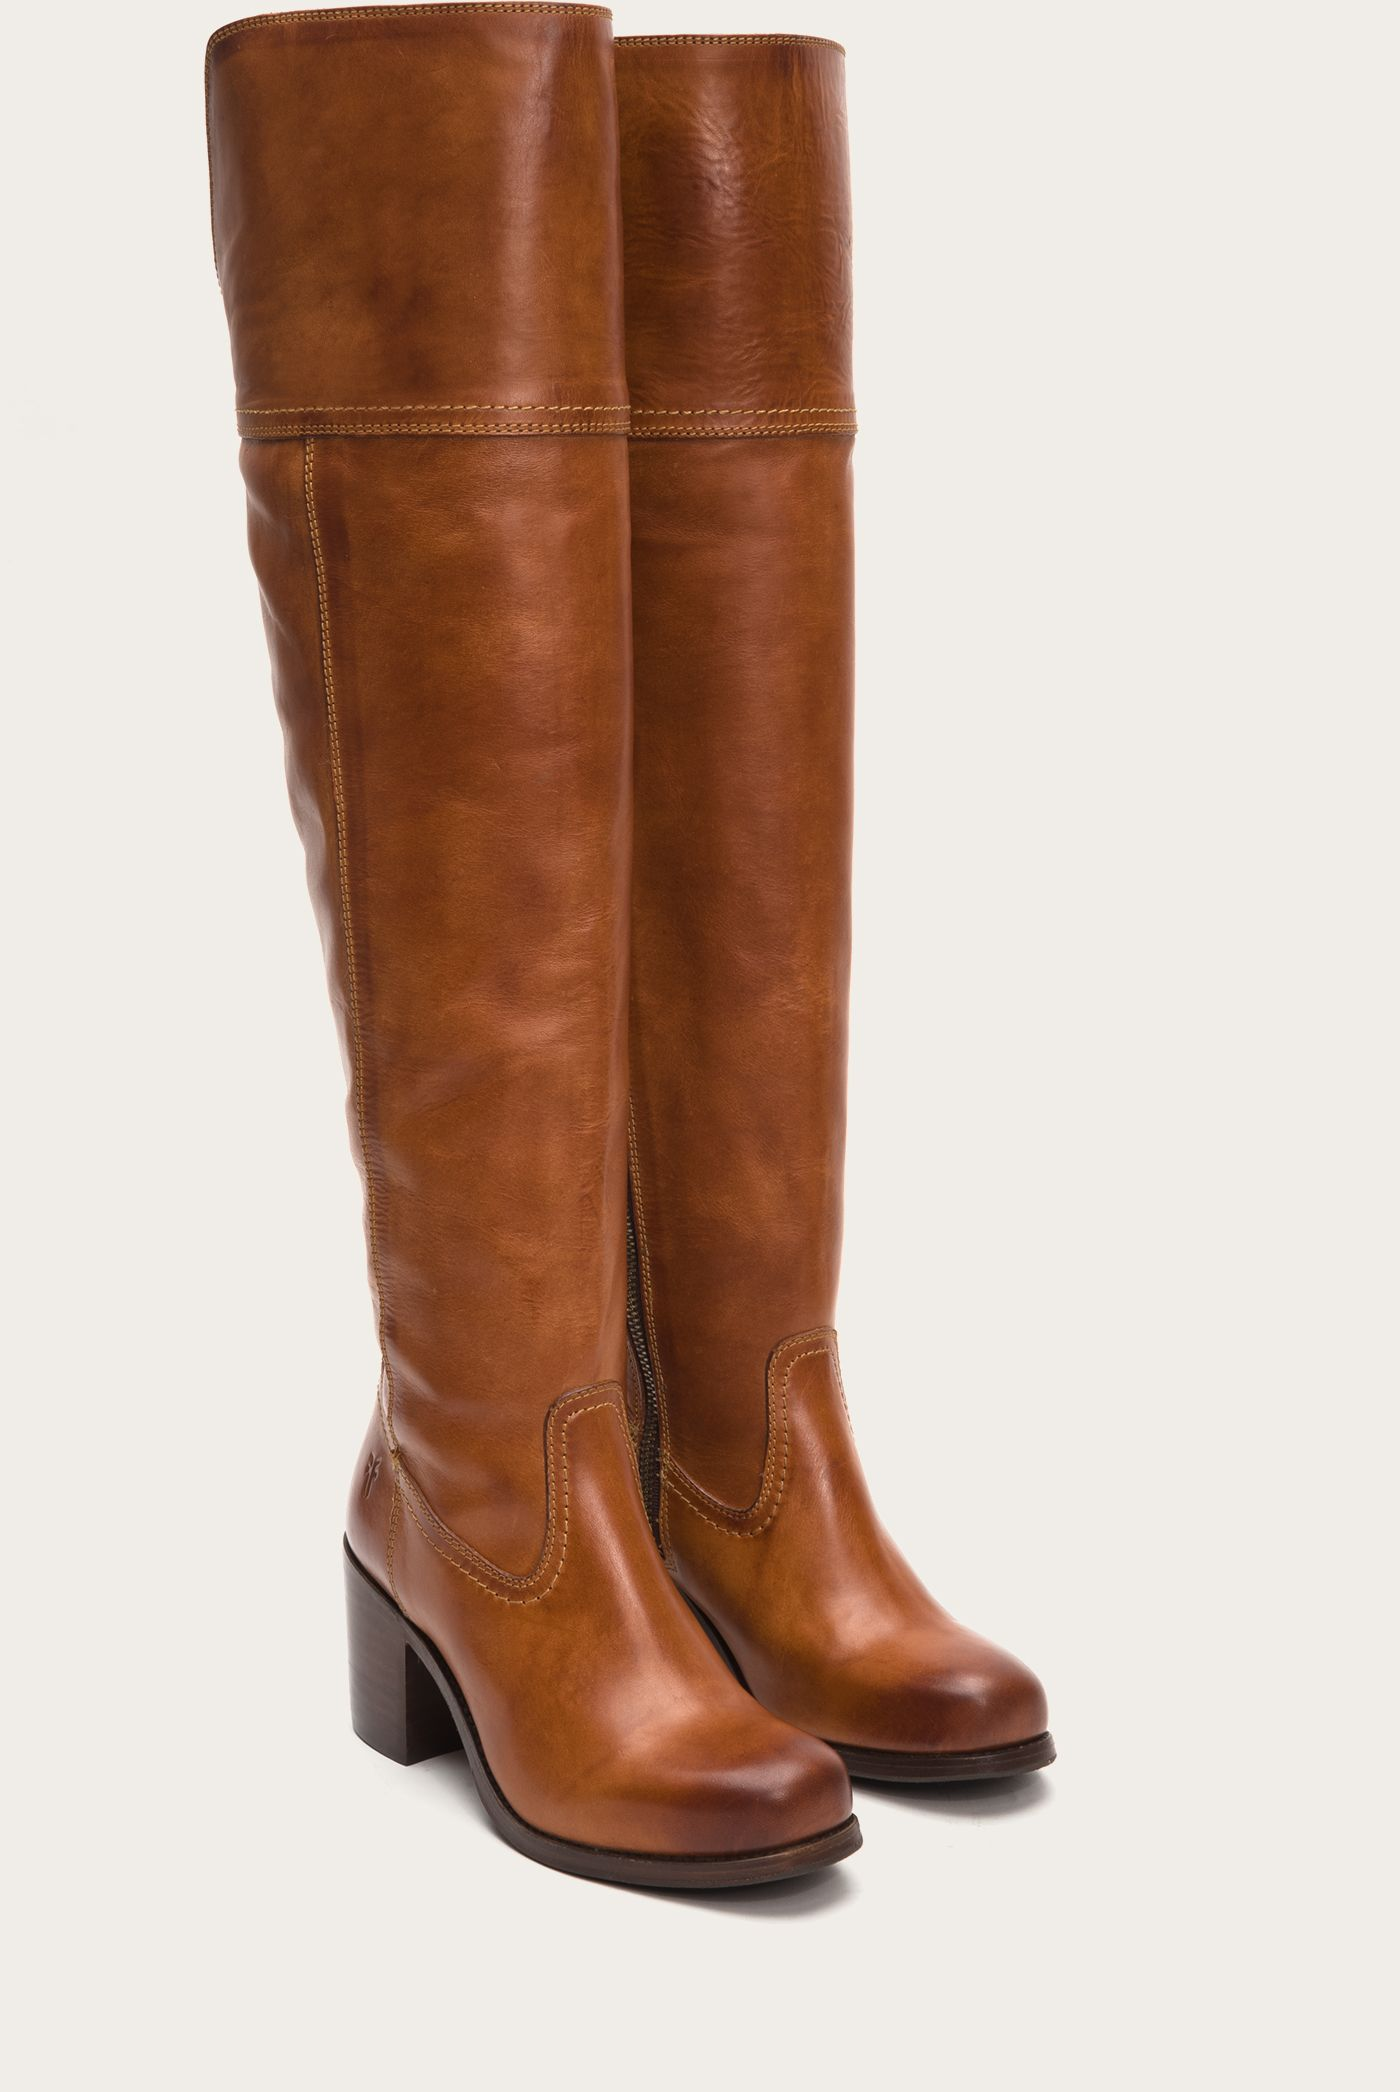 Women's Boots/frye chocolate suede clara over the knee oiled xj5q36j1